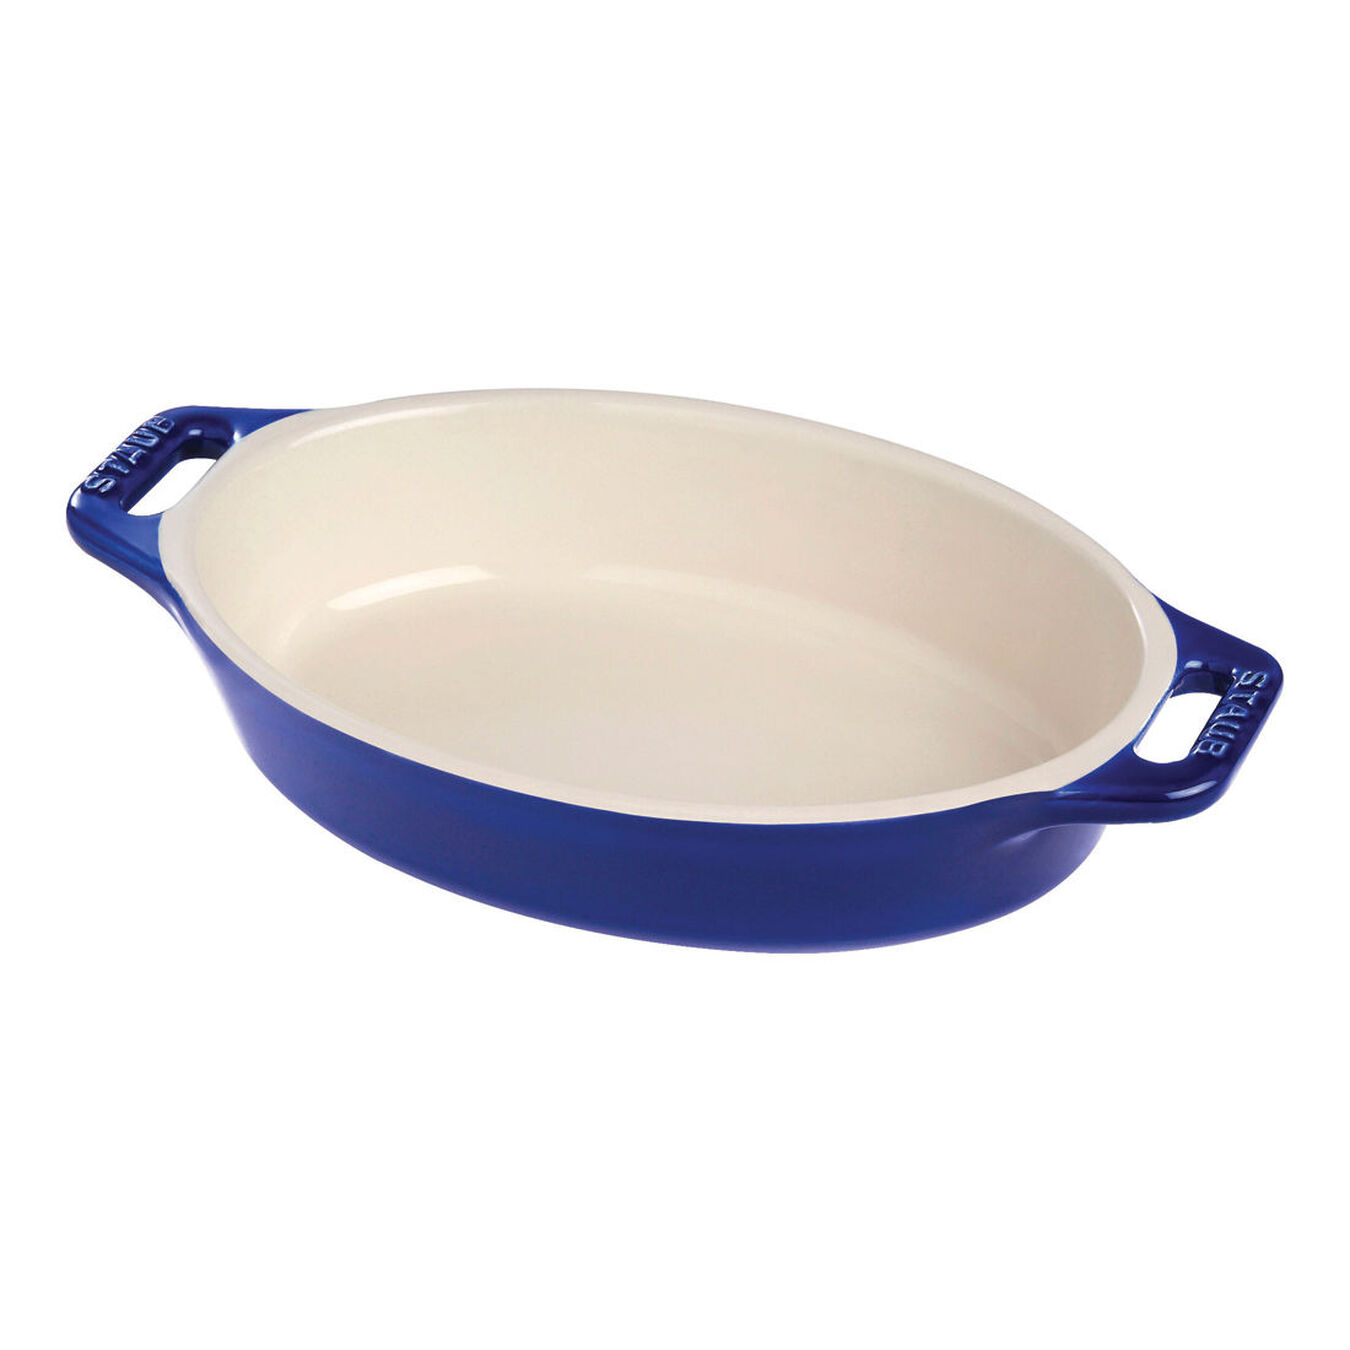 11-inch, oval, Special shape bakeware, dark blue,,large 1